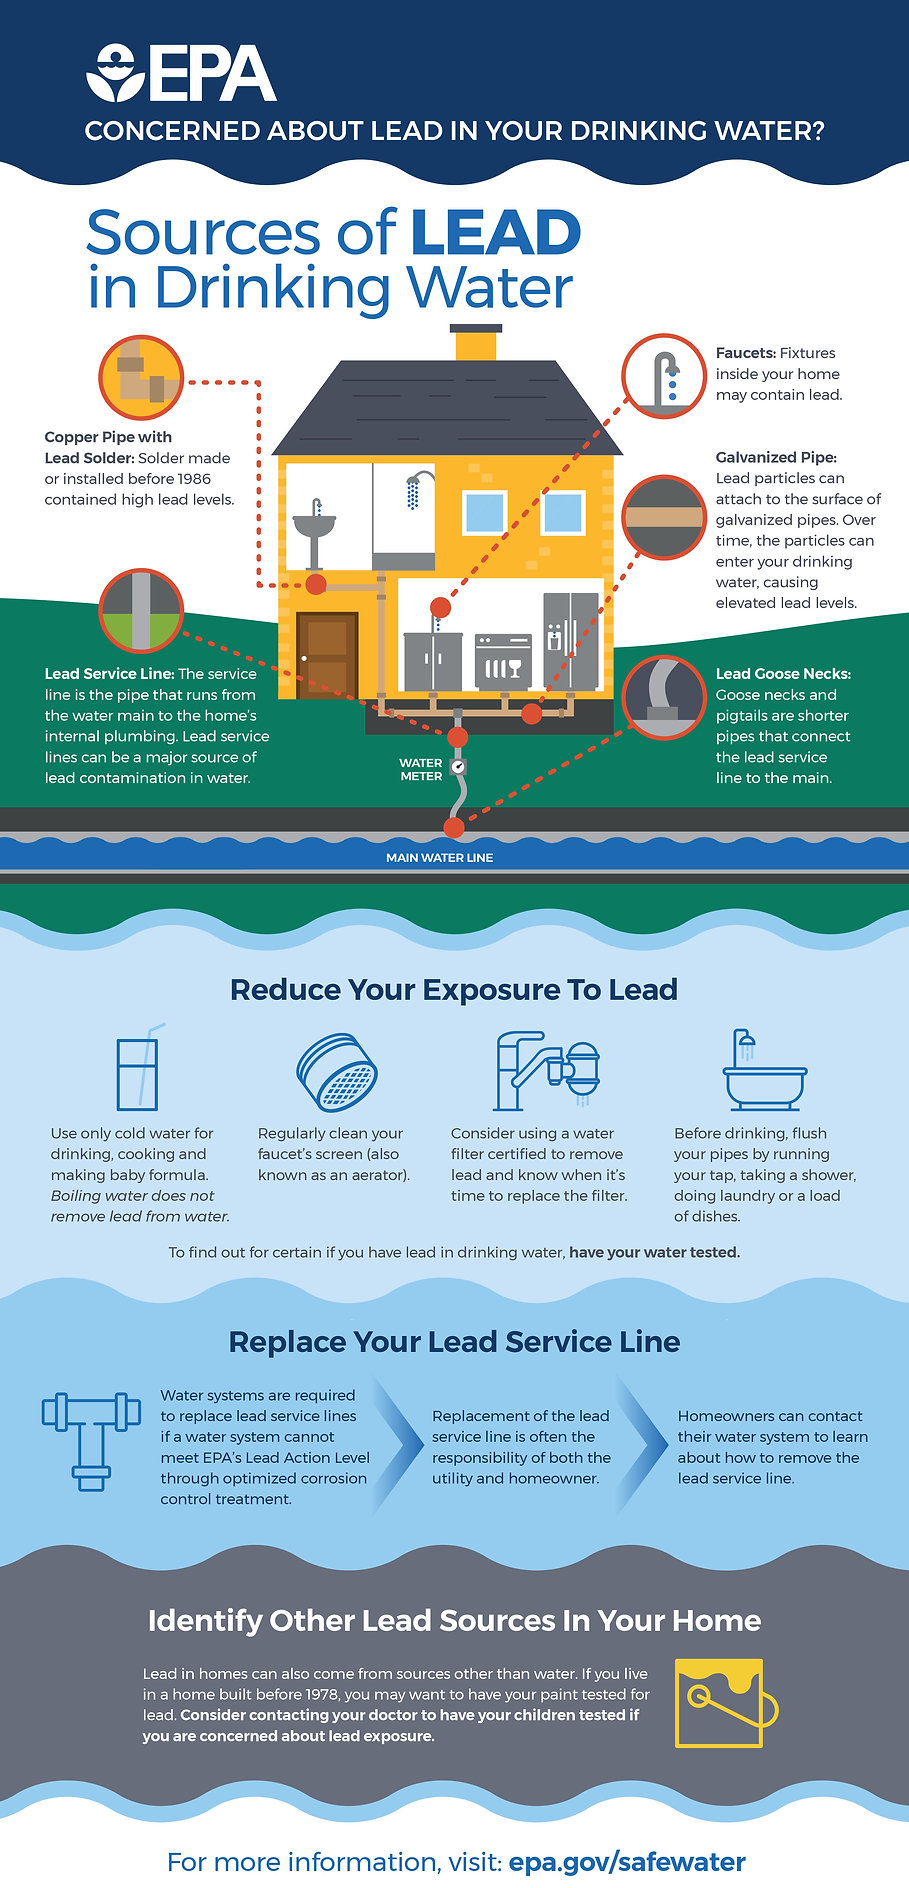 EPA sources of lead in drinking water infographic